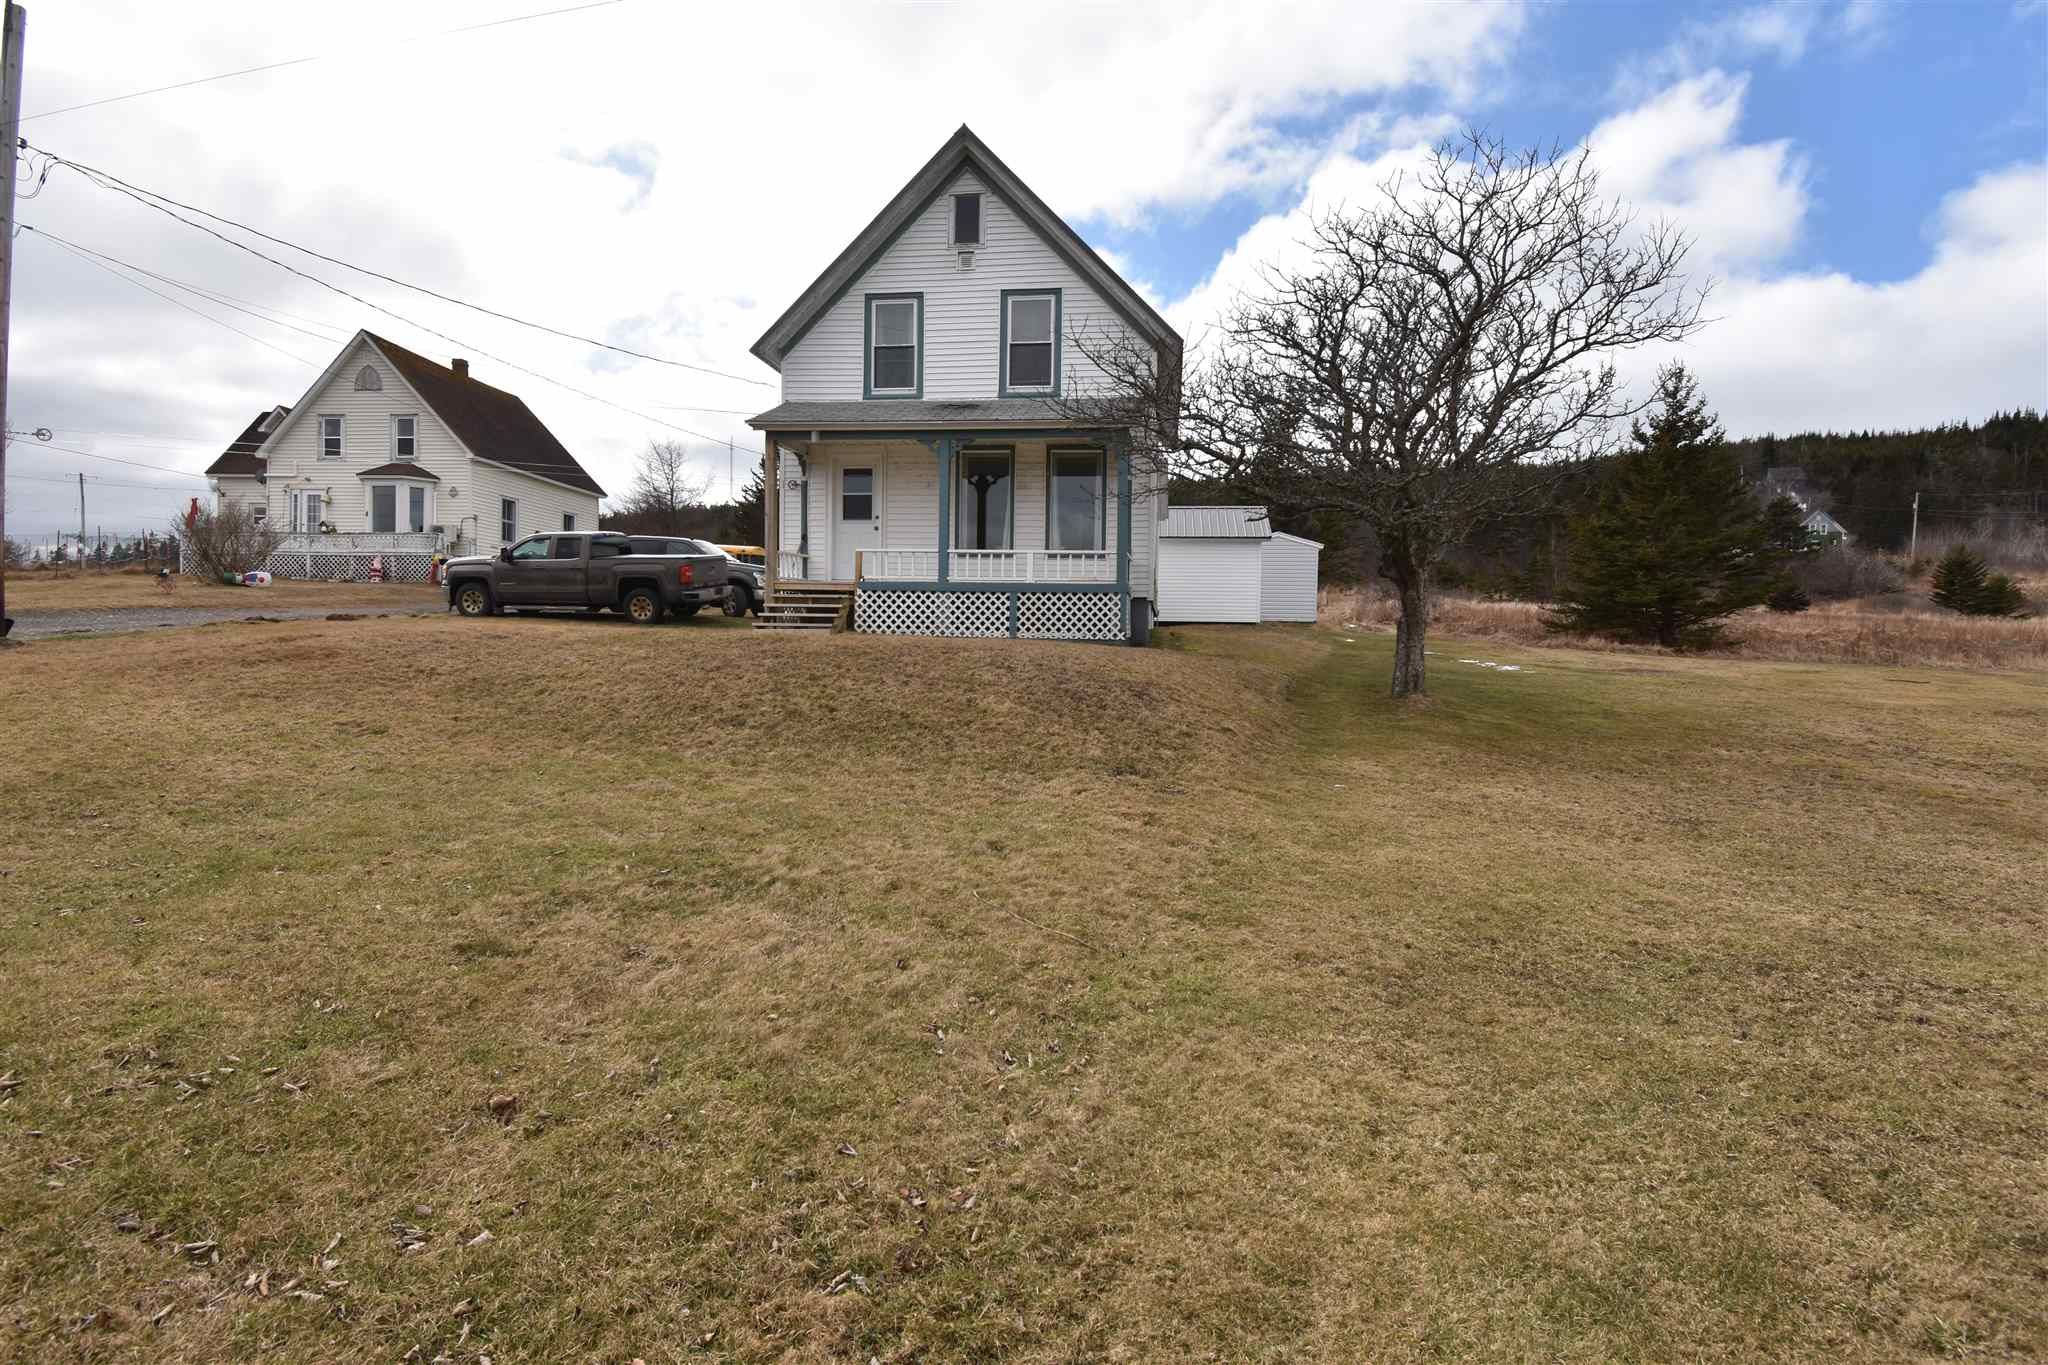 Main Photo: 20 G DAVIS ELLIOTTS Lane in Tiverton: 401-Digby County Residential for sale (Annapolis Valley)  : MLS®# 202105516